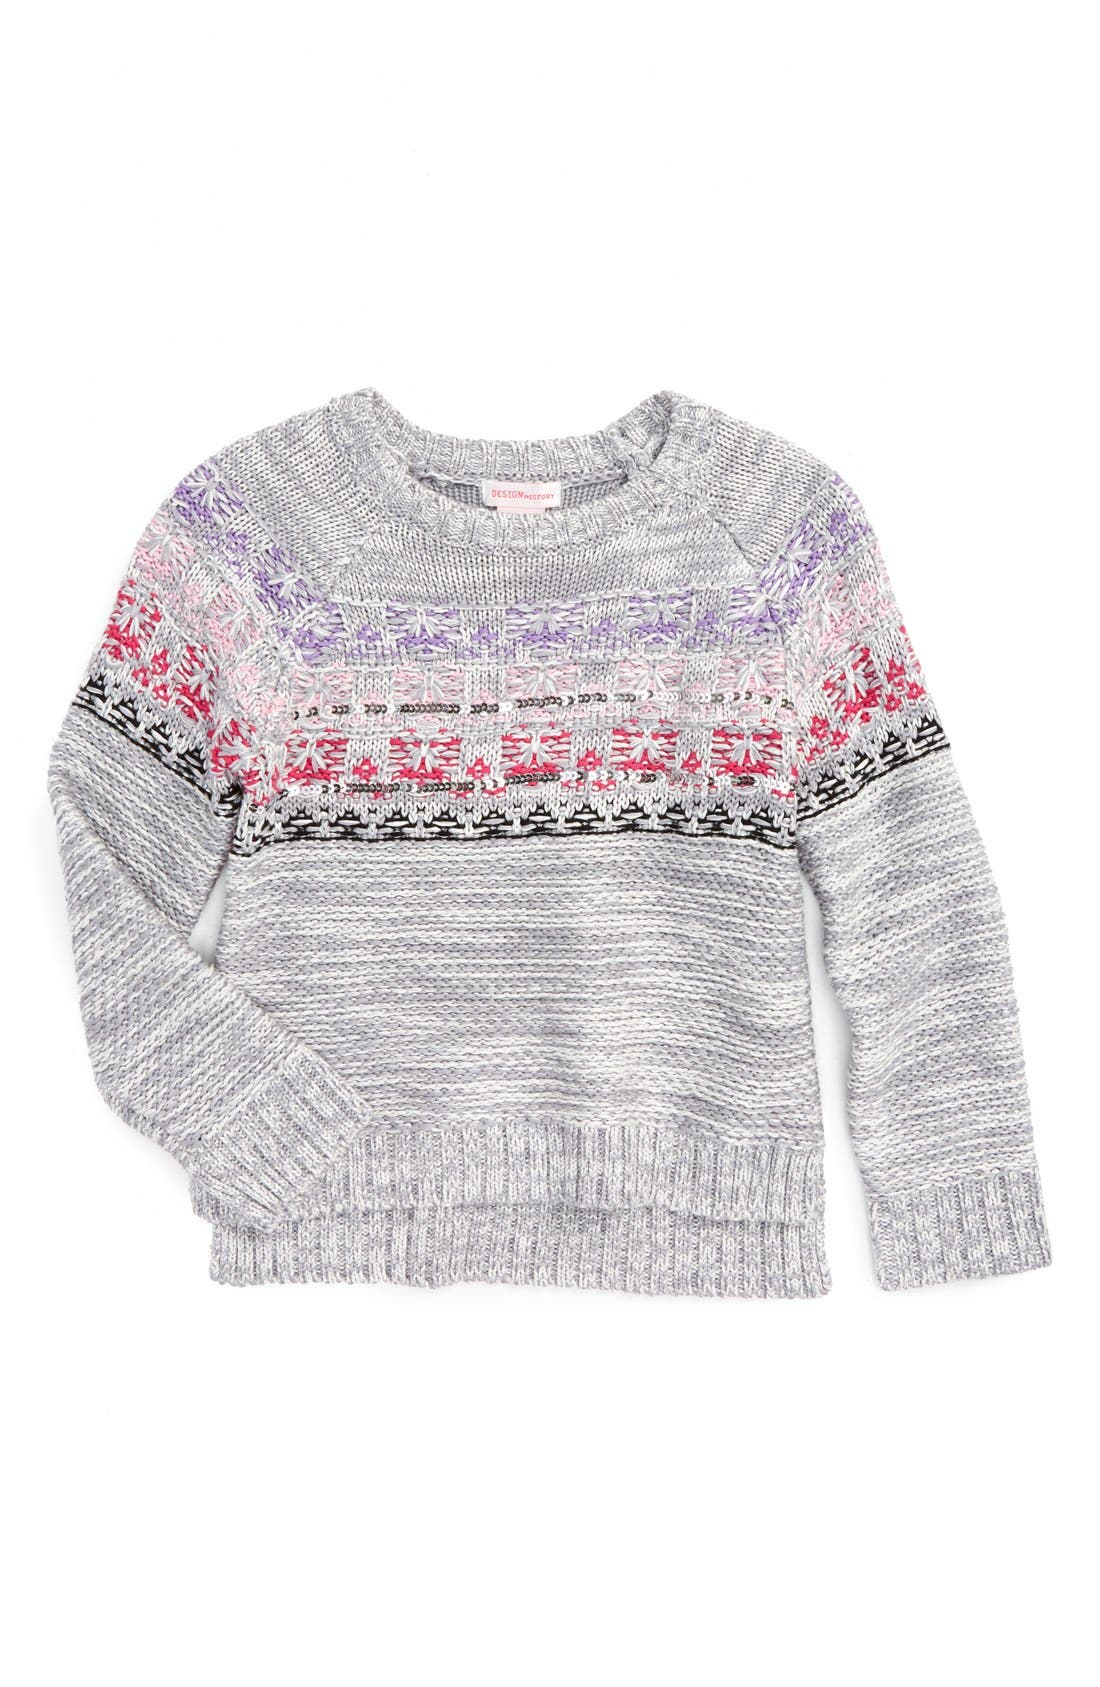 Alternate Image 1 Selected - Design History Embellished Knit Sweater (Toddler Girls & Little Girls)